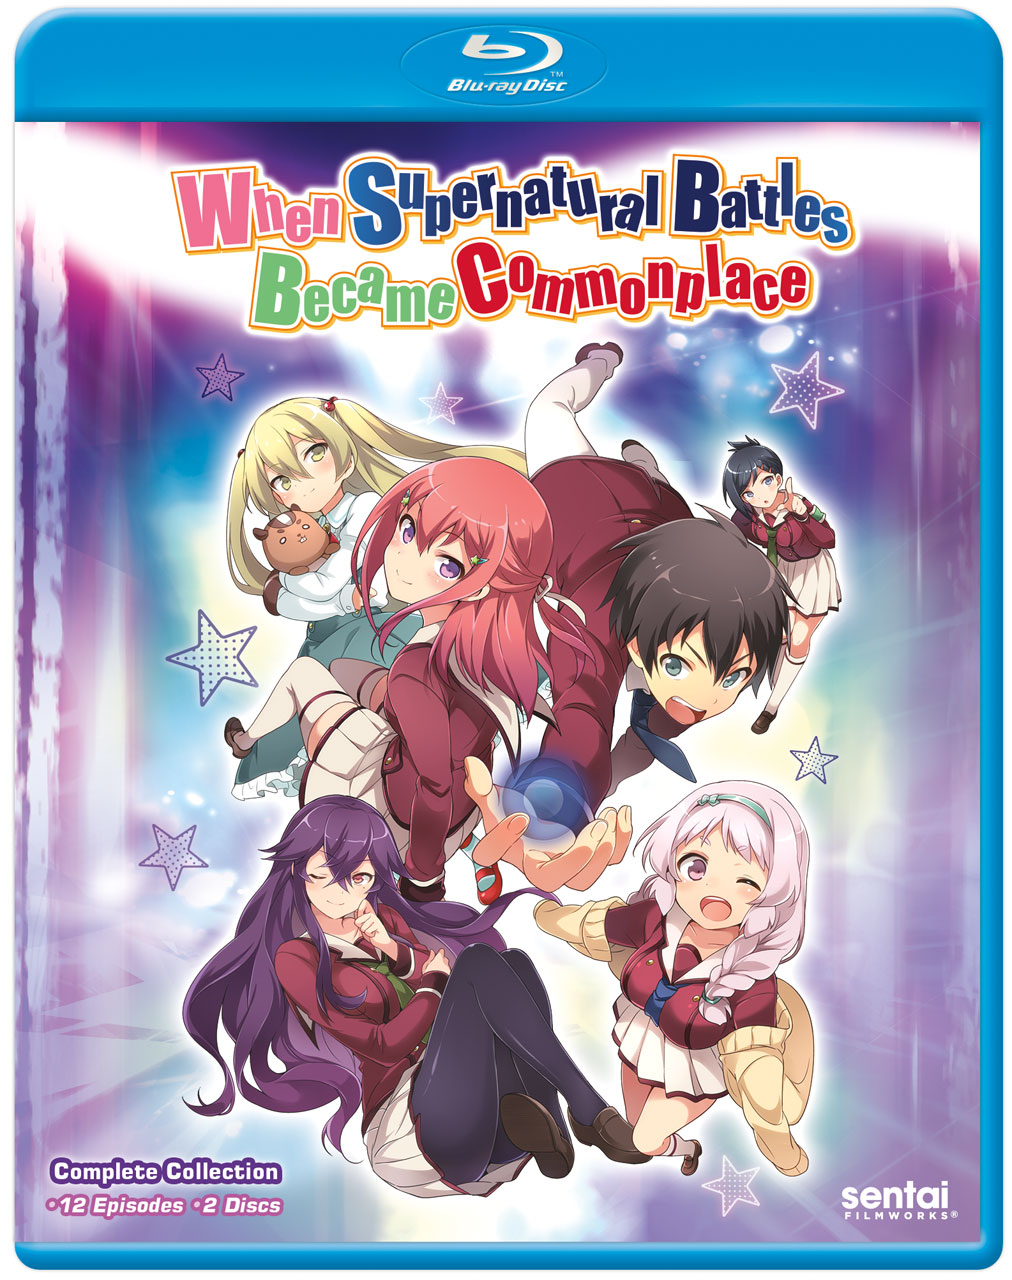 When Supernatural Battles Became Commonplace Blu-ray 814131015785